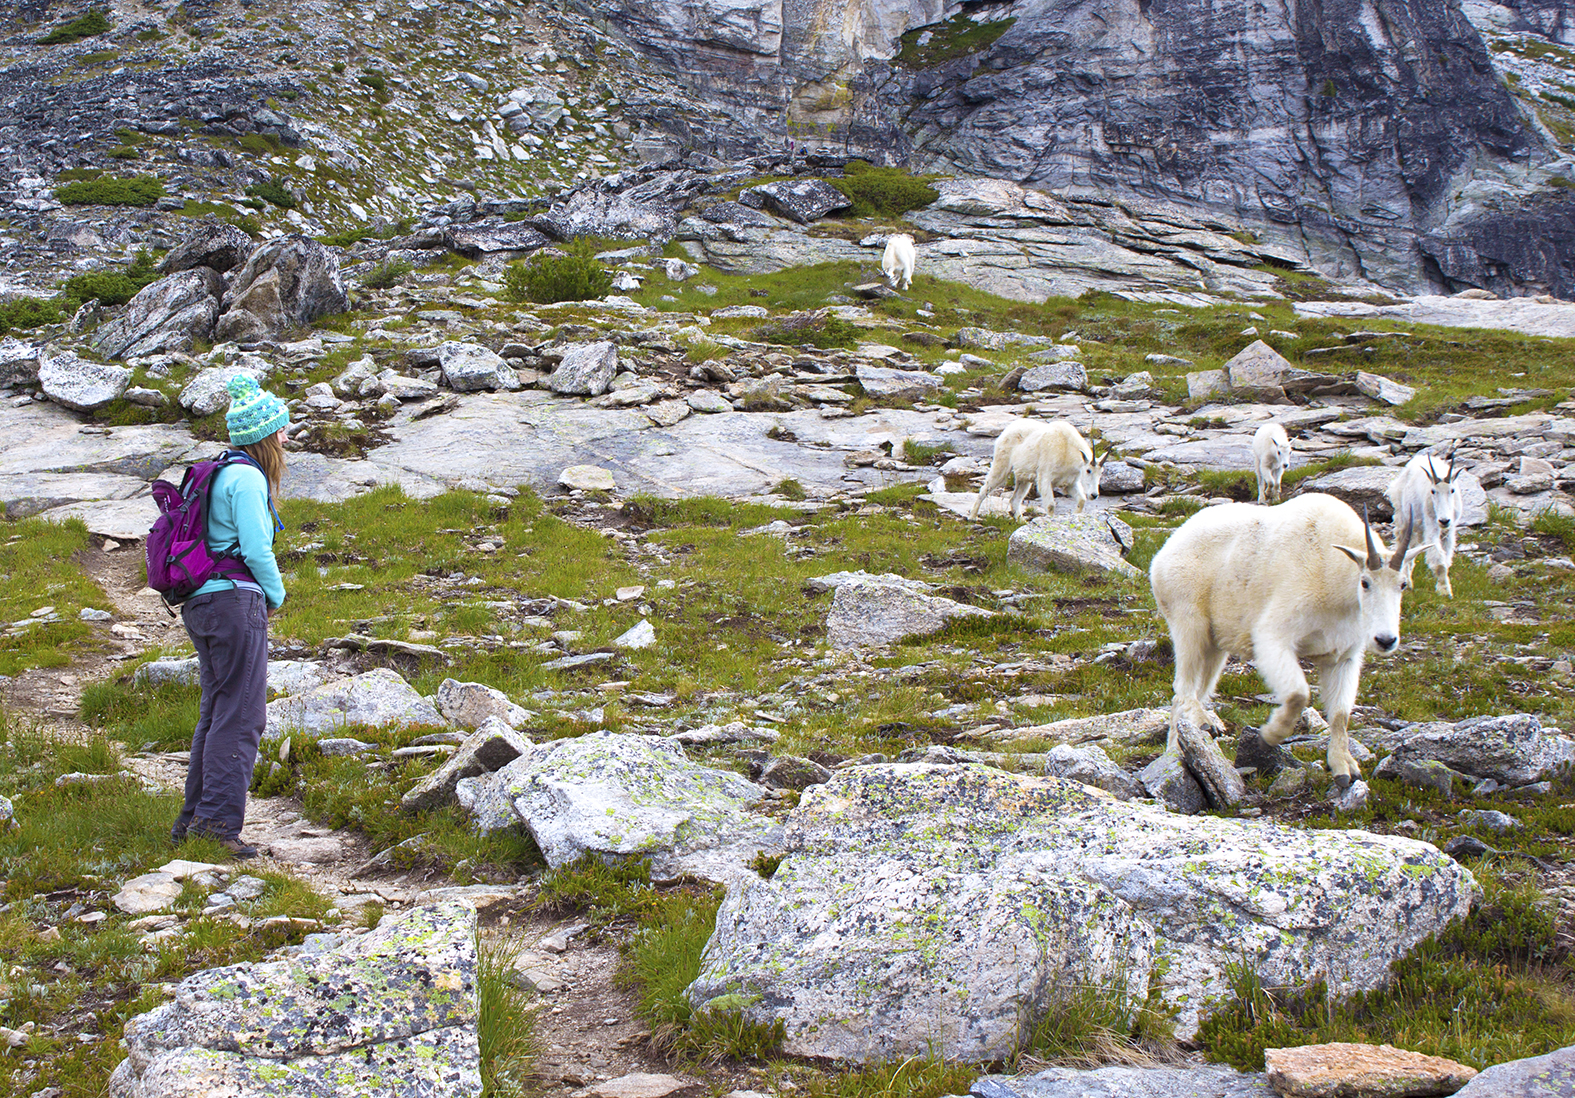 A woman pauses her hike to allow a family of goats to cross her path.